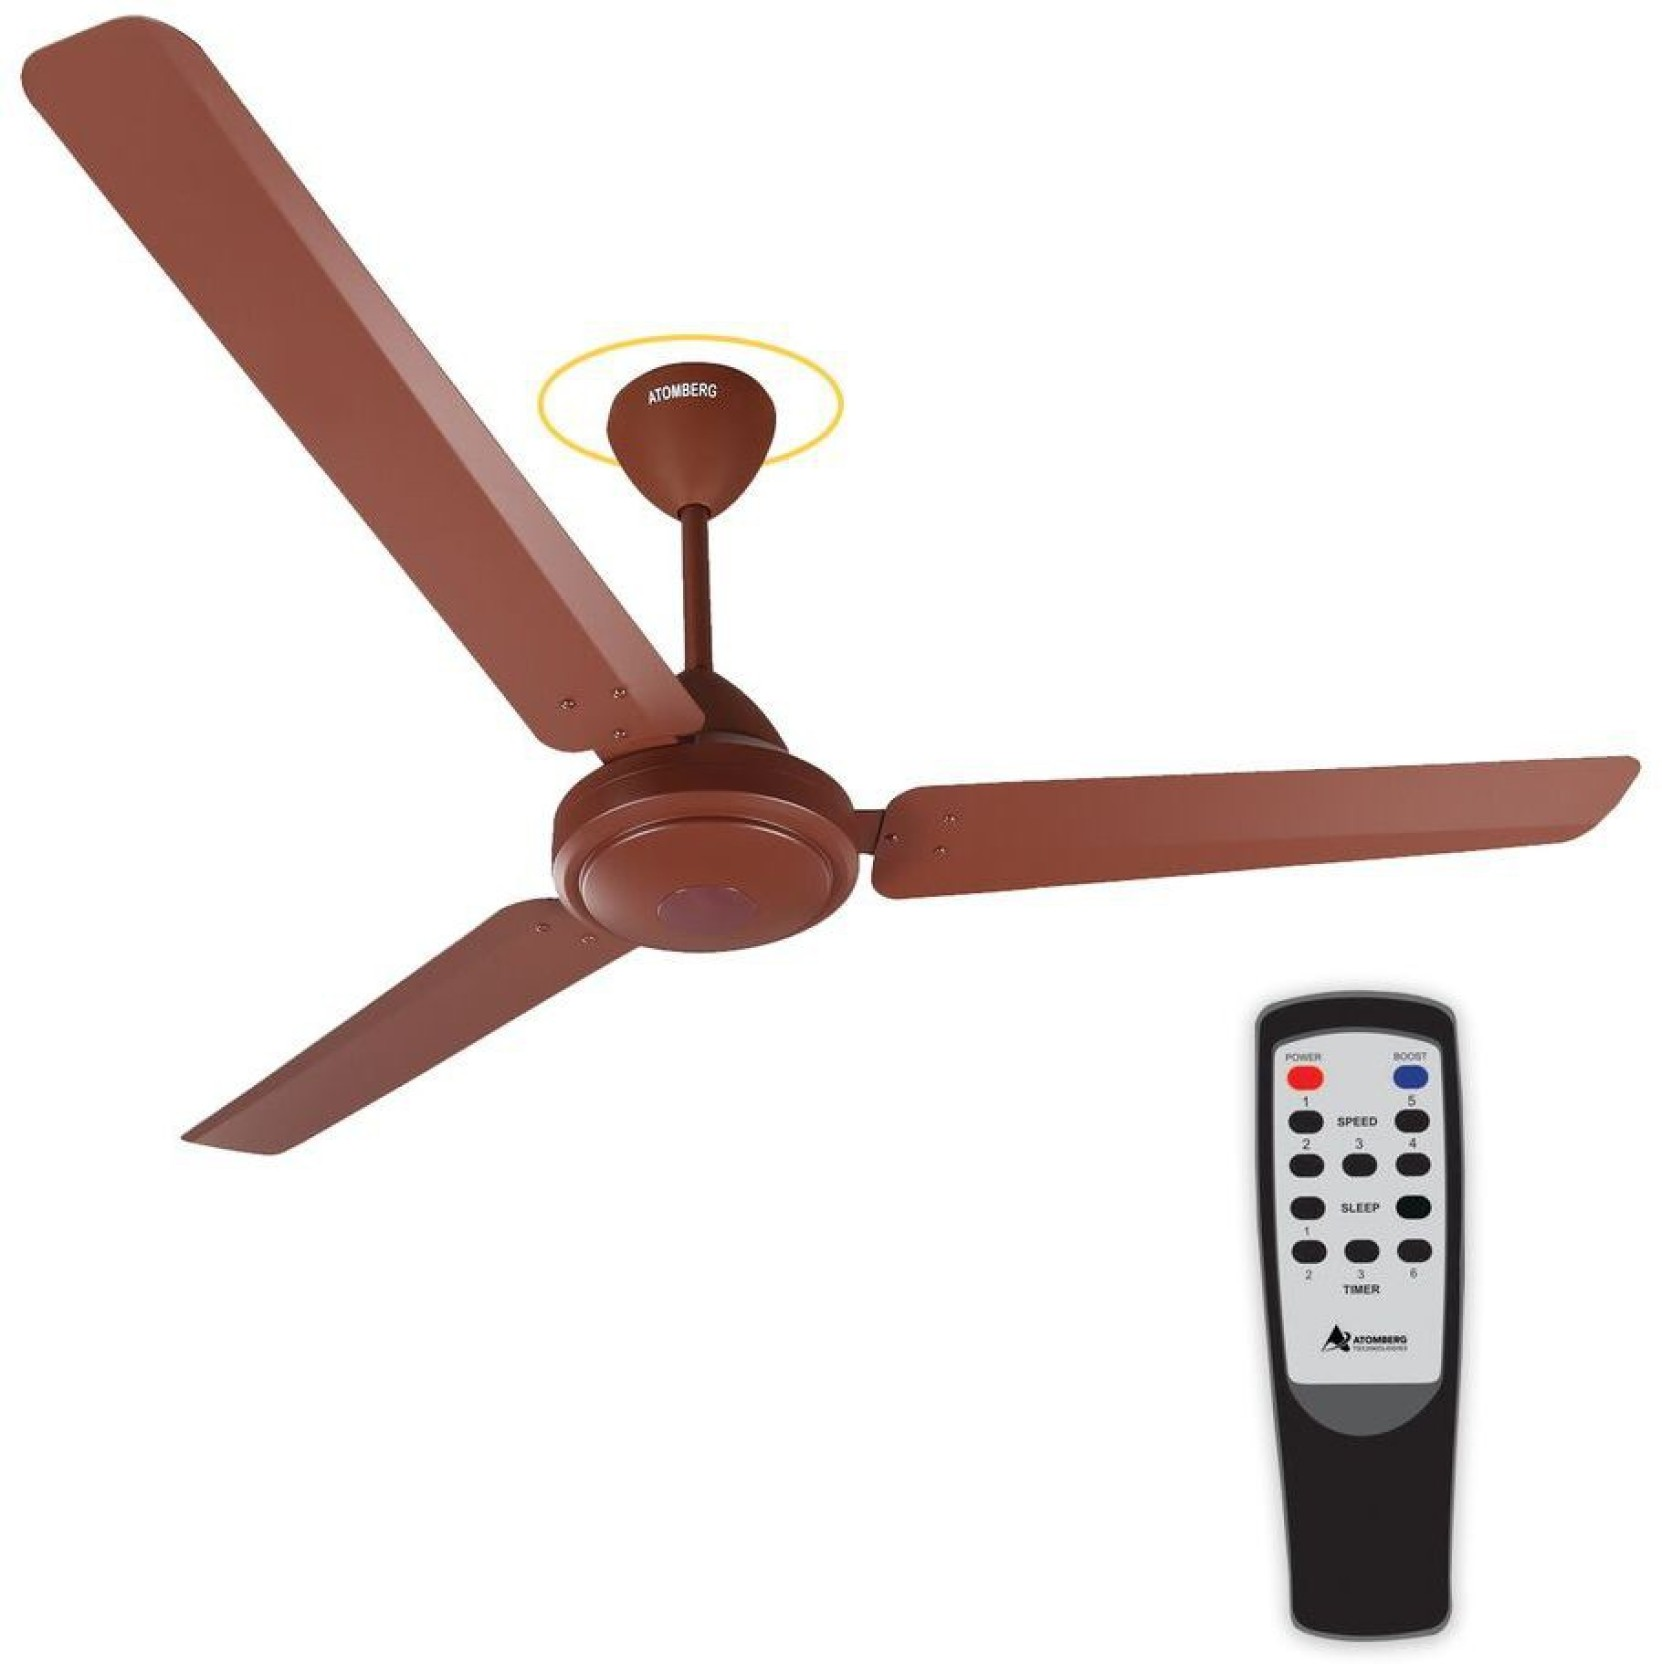 Gorilla E1 1200mb Bldc Motor With Remote Control 3 Blade Ceiling Fan Google On Wires And Wiring A Without Light Offer